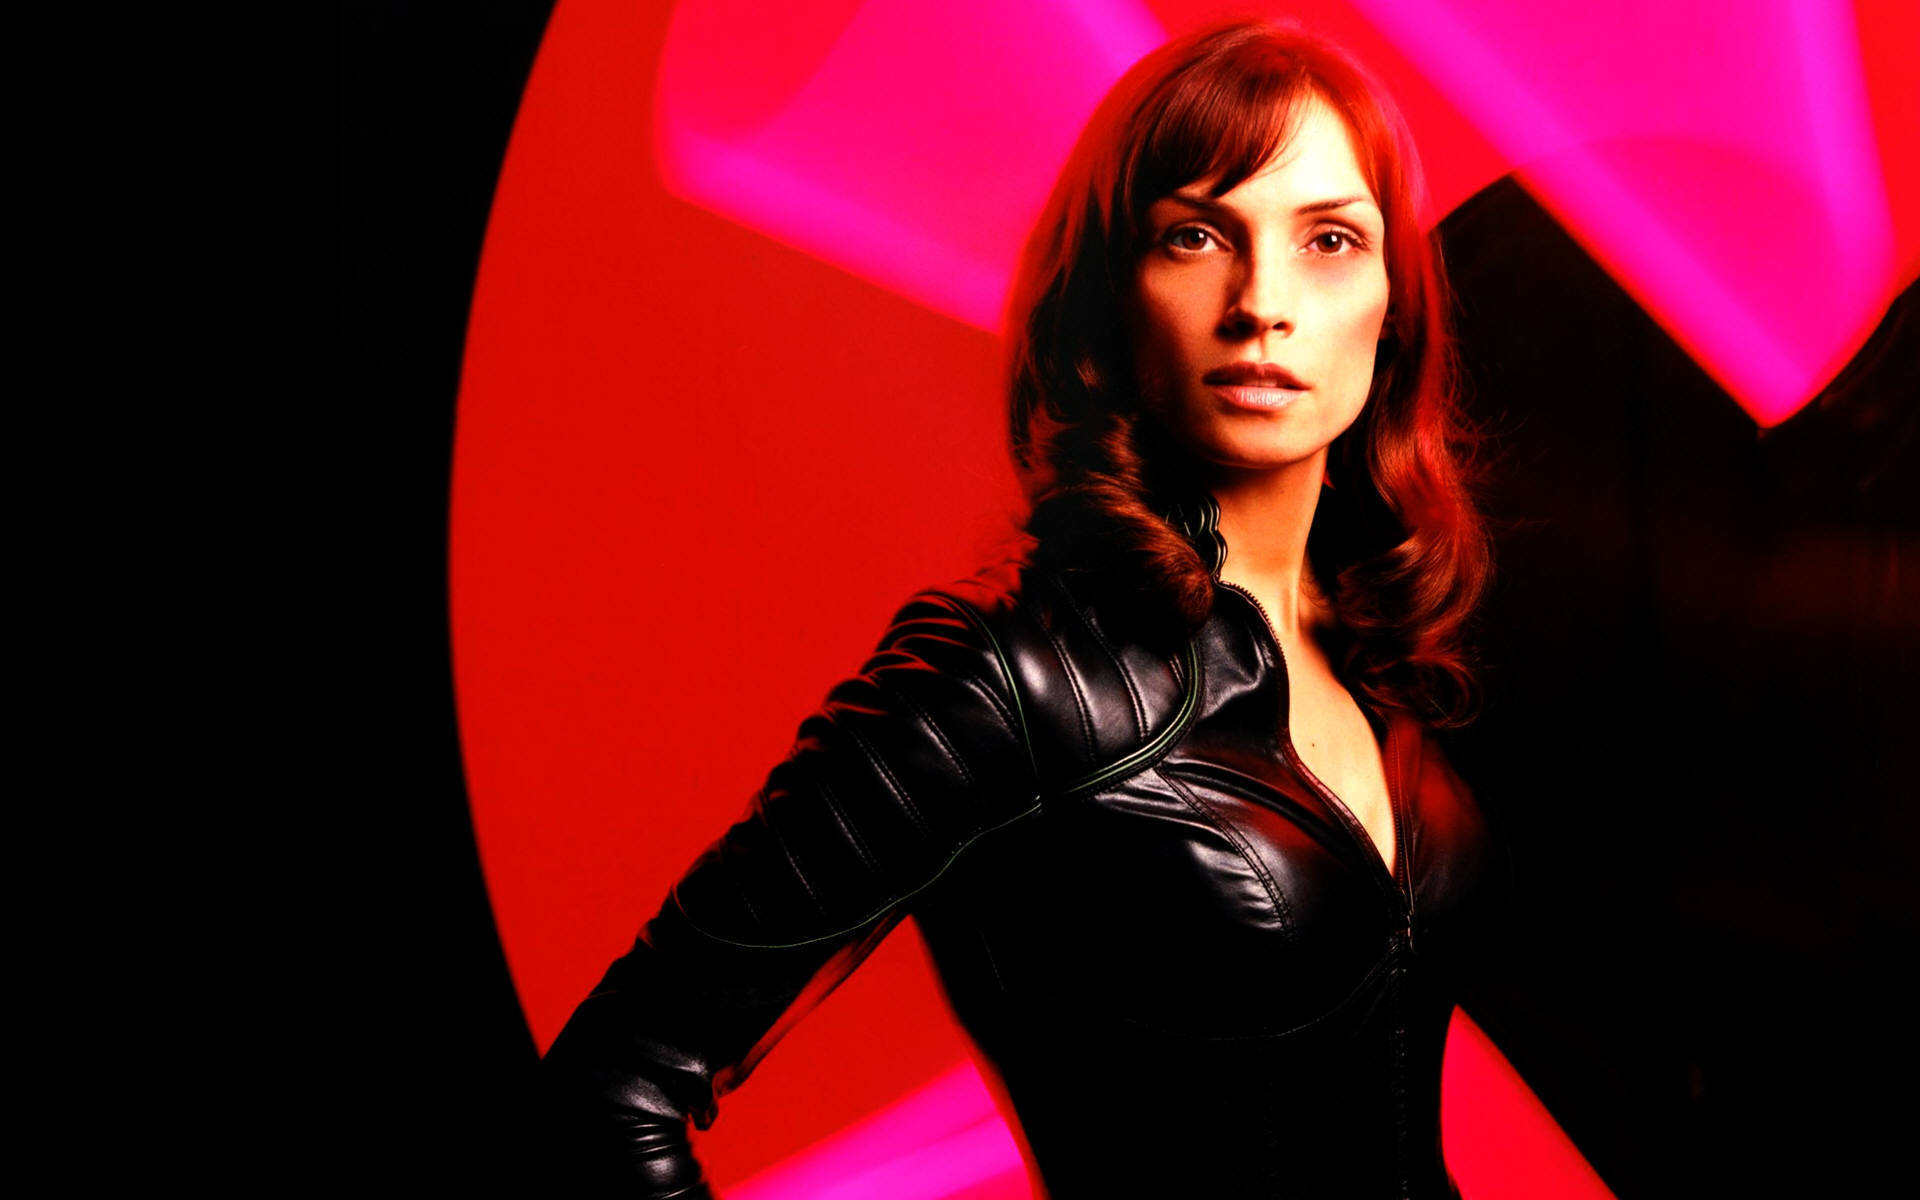 x men movie jean grey - photo #5